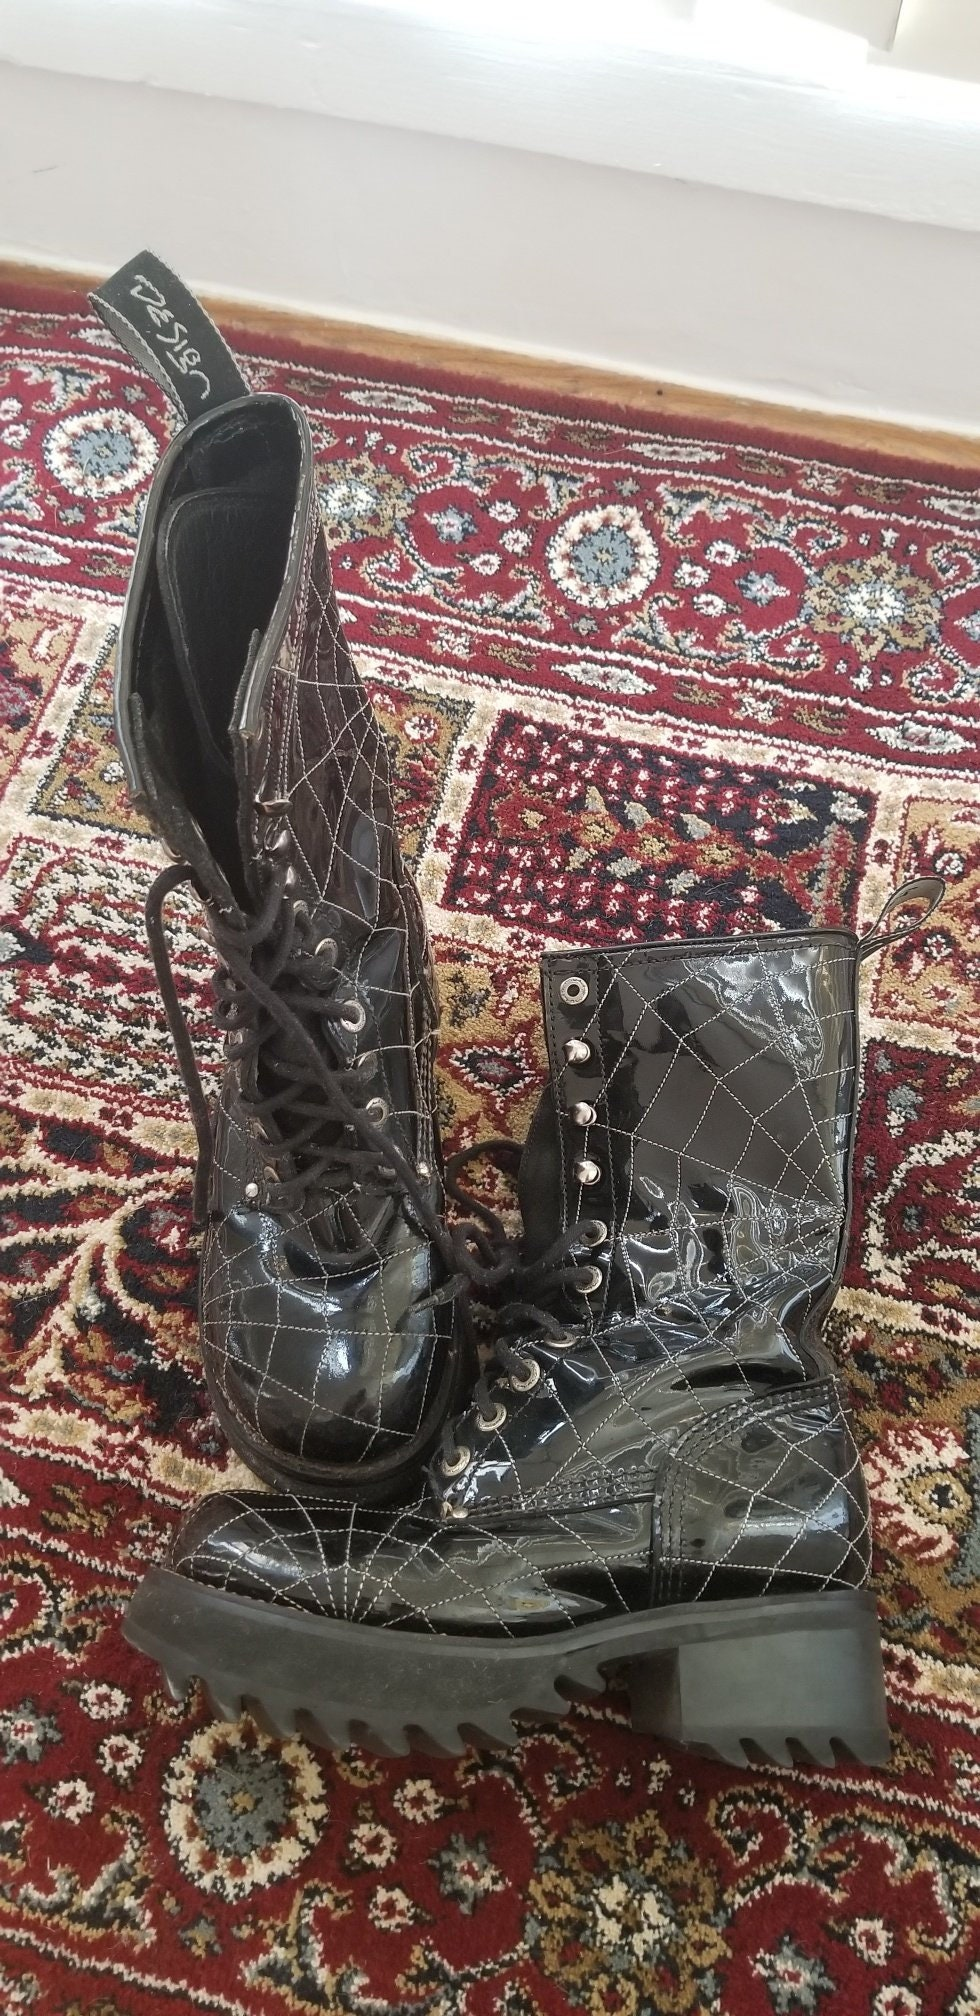 57d2f5fab4acd Vintage Patent Leather Spiderweb Combat Boots by MURO 90s Size 7 Womens